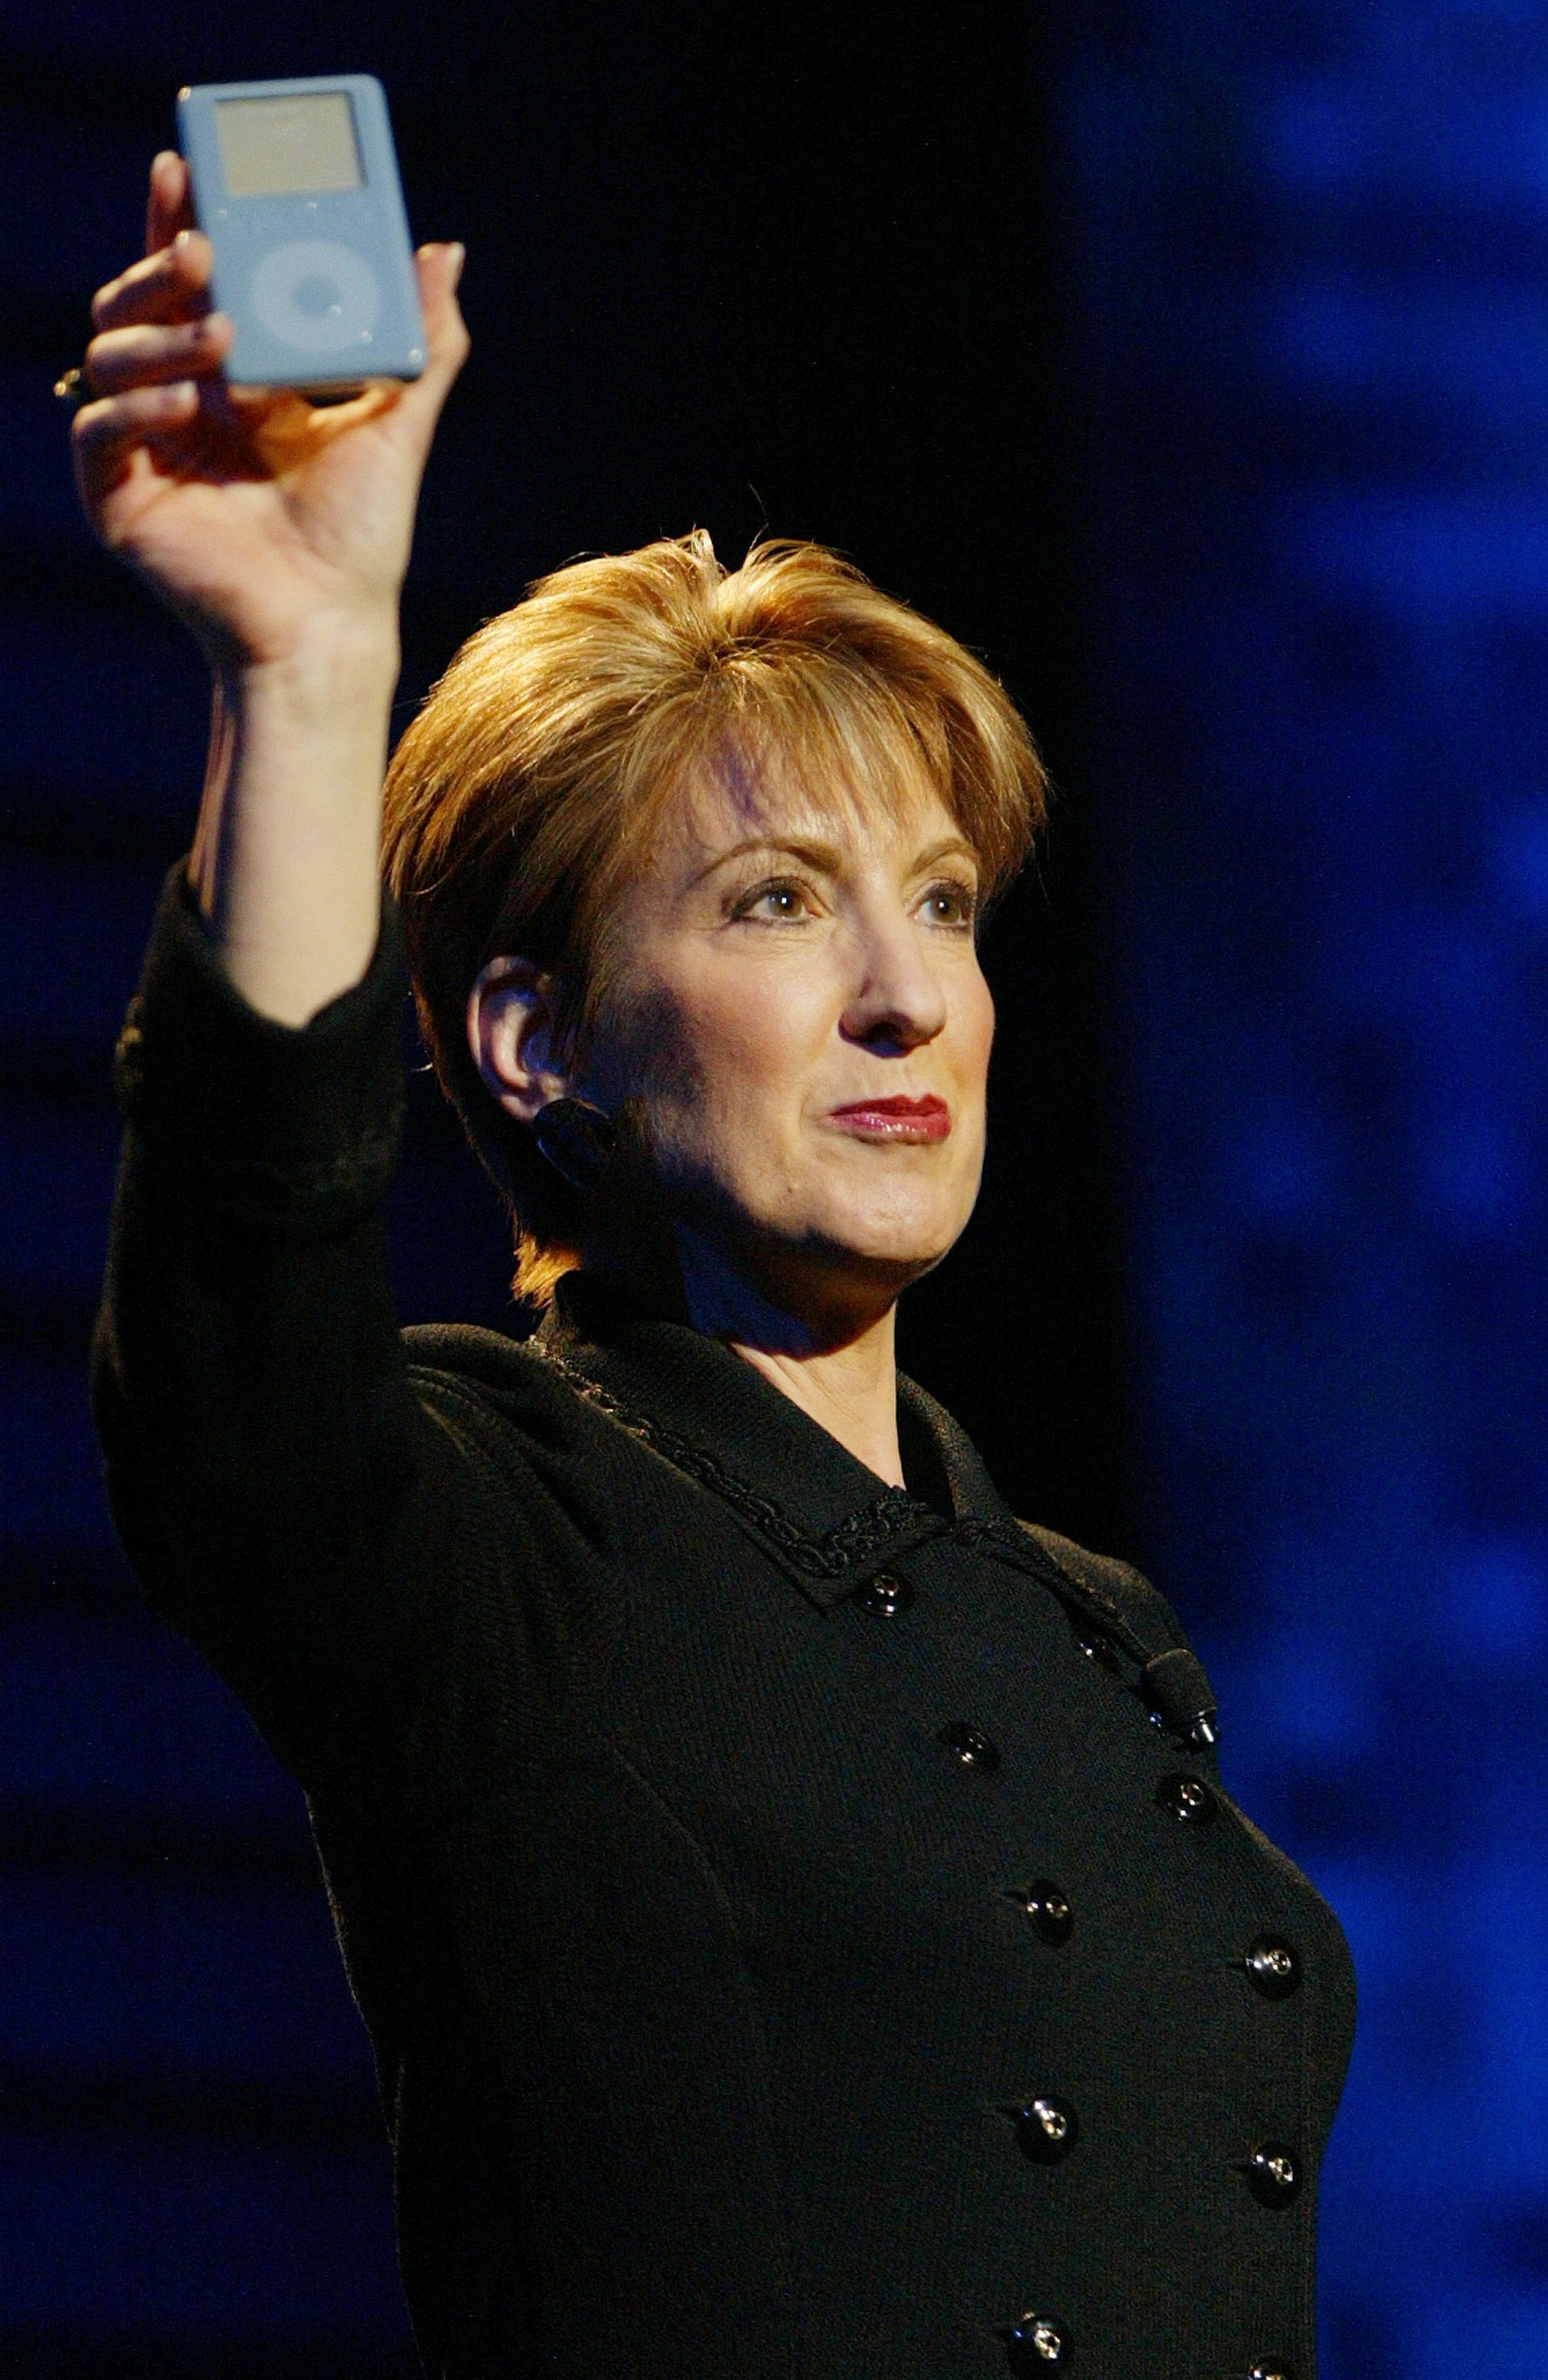 Carly Fiorina holds up an iPod as she delivers a keynote address at the International Consumer Electronics Show (CES) January 8, 2004 in Las Vegas.